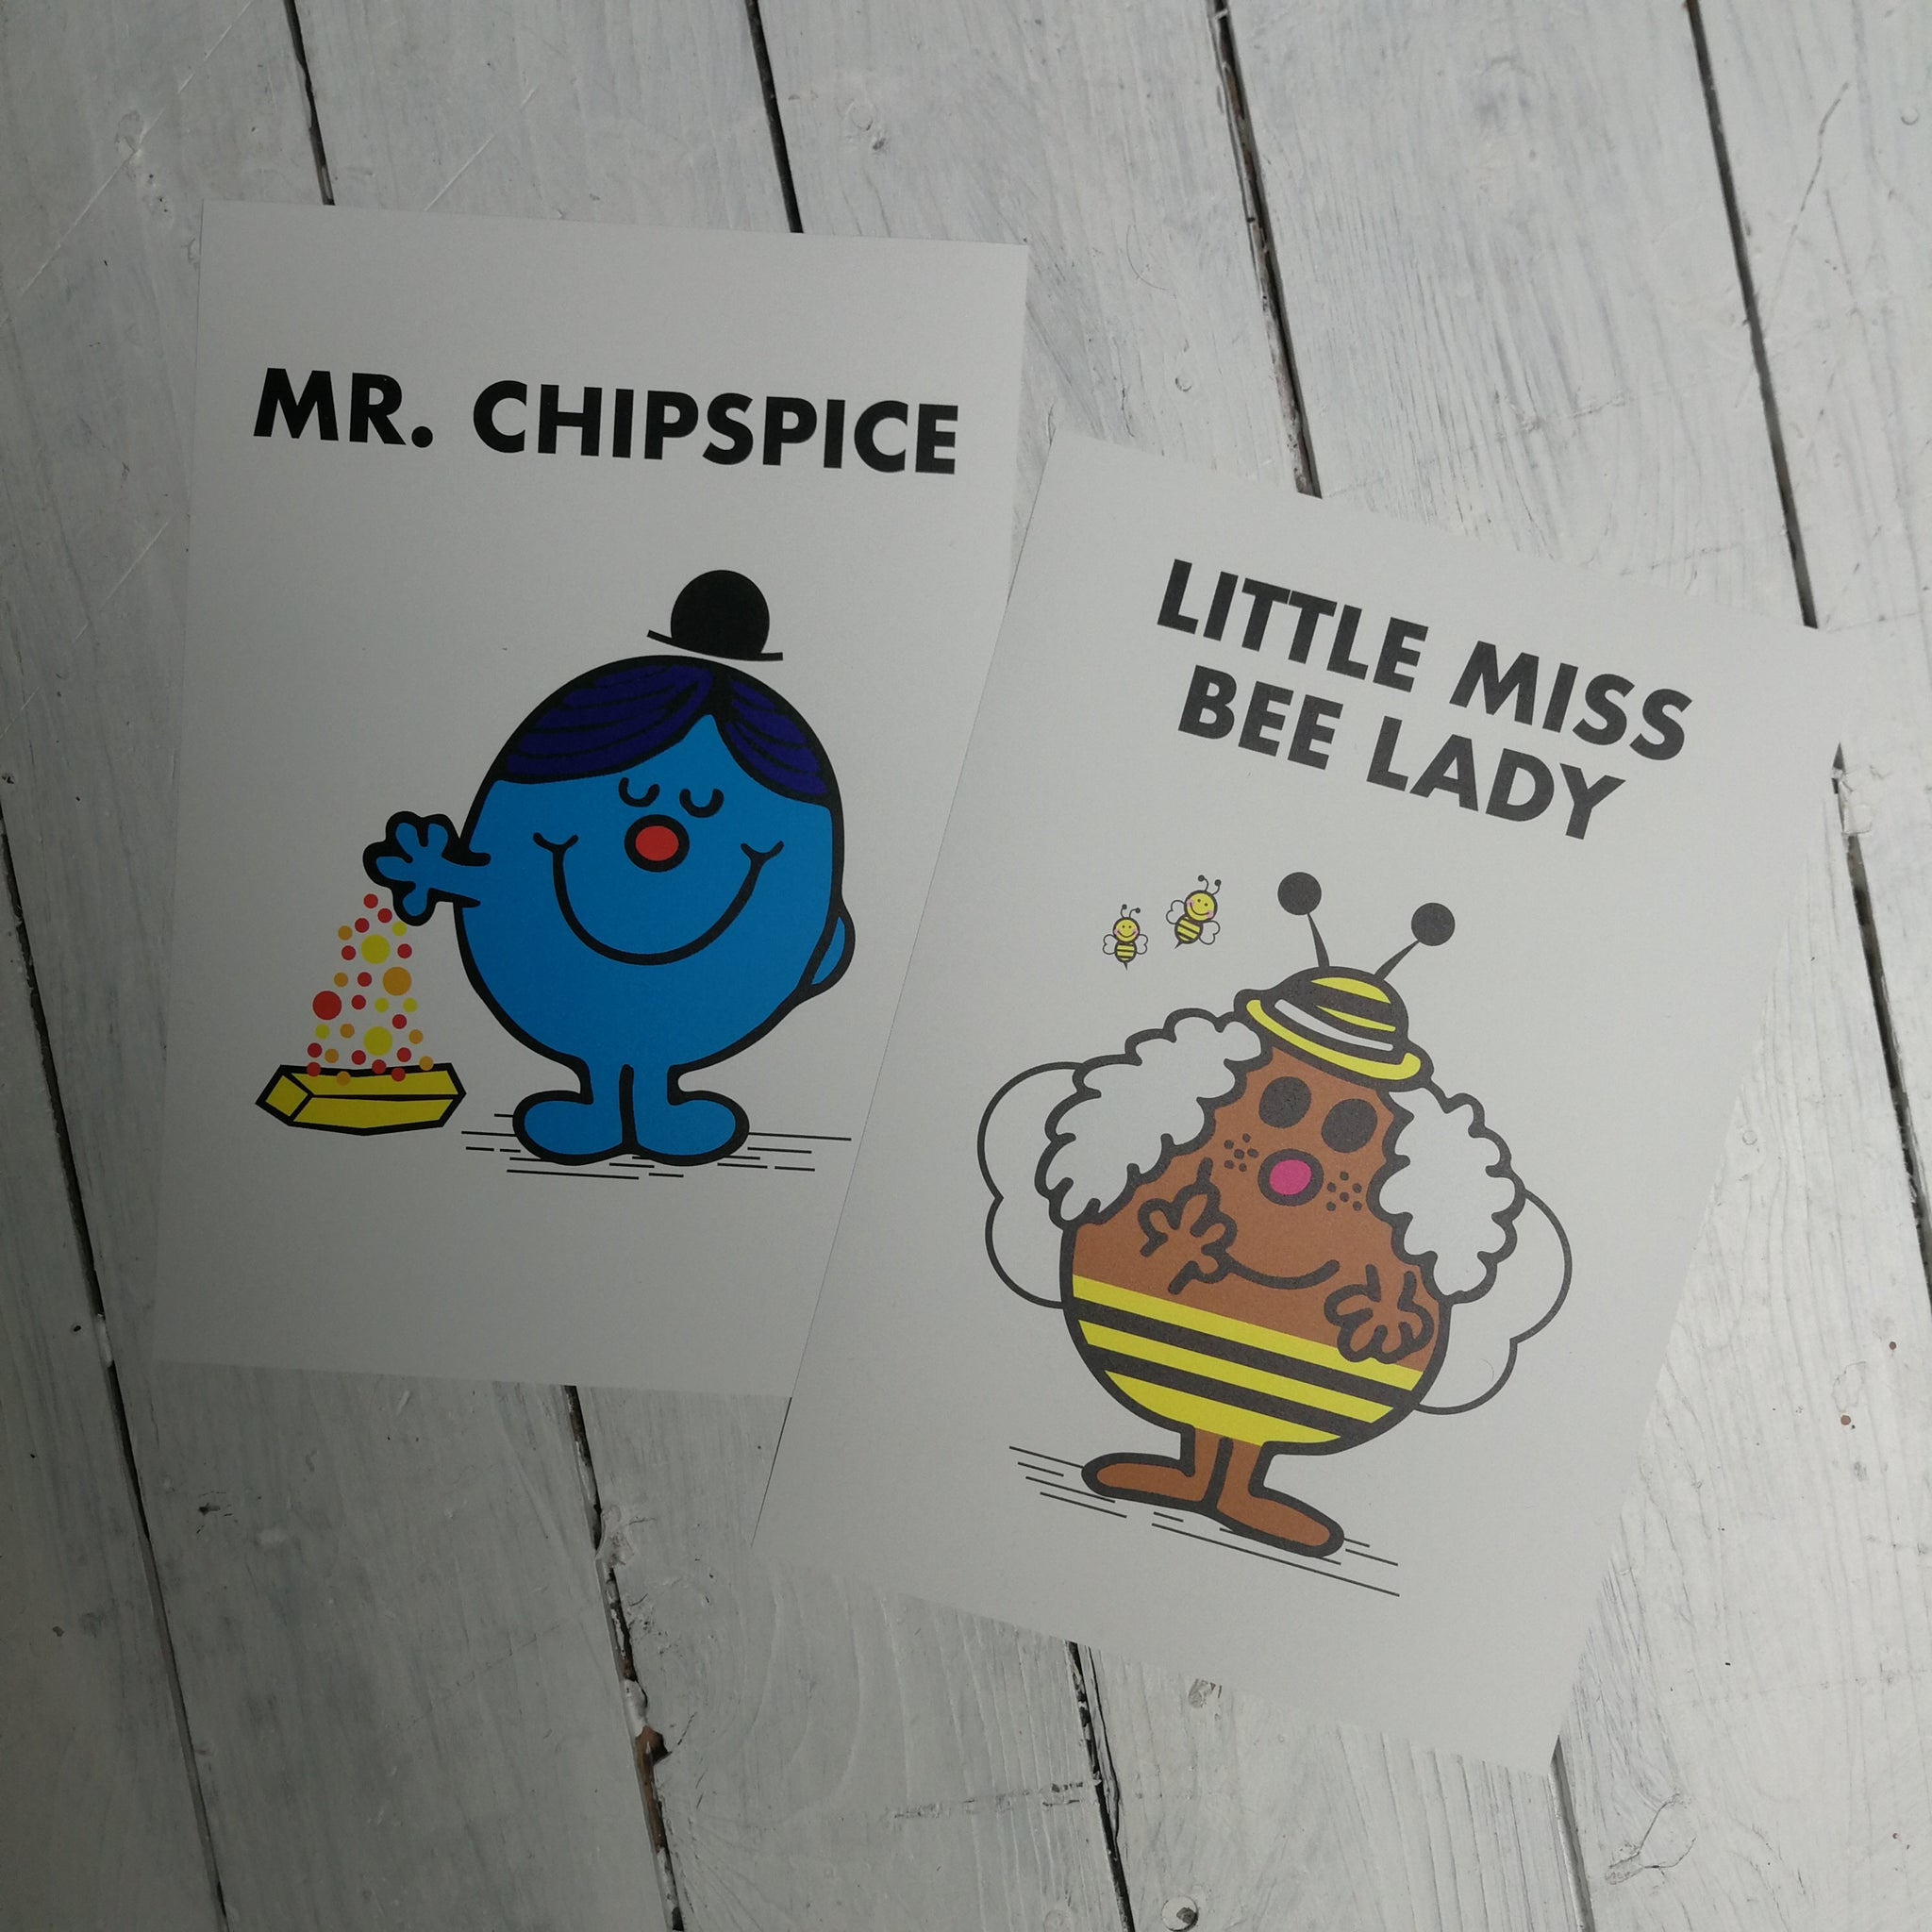 Little Miss Bee Lady & Mr Chipspice